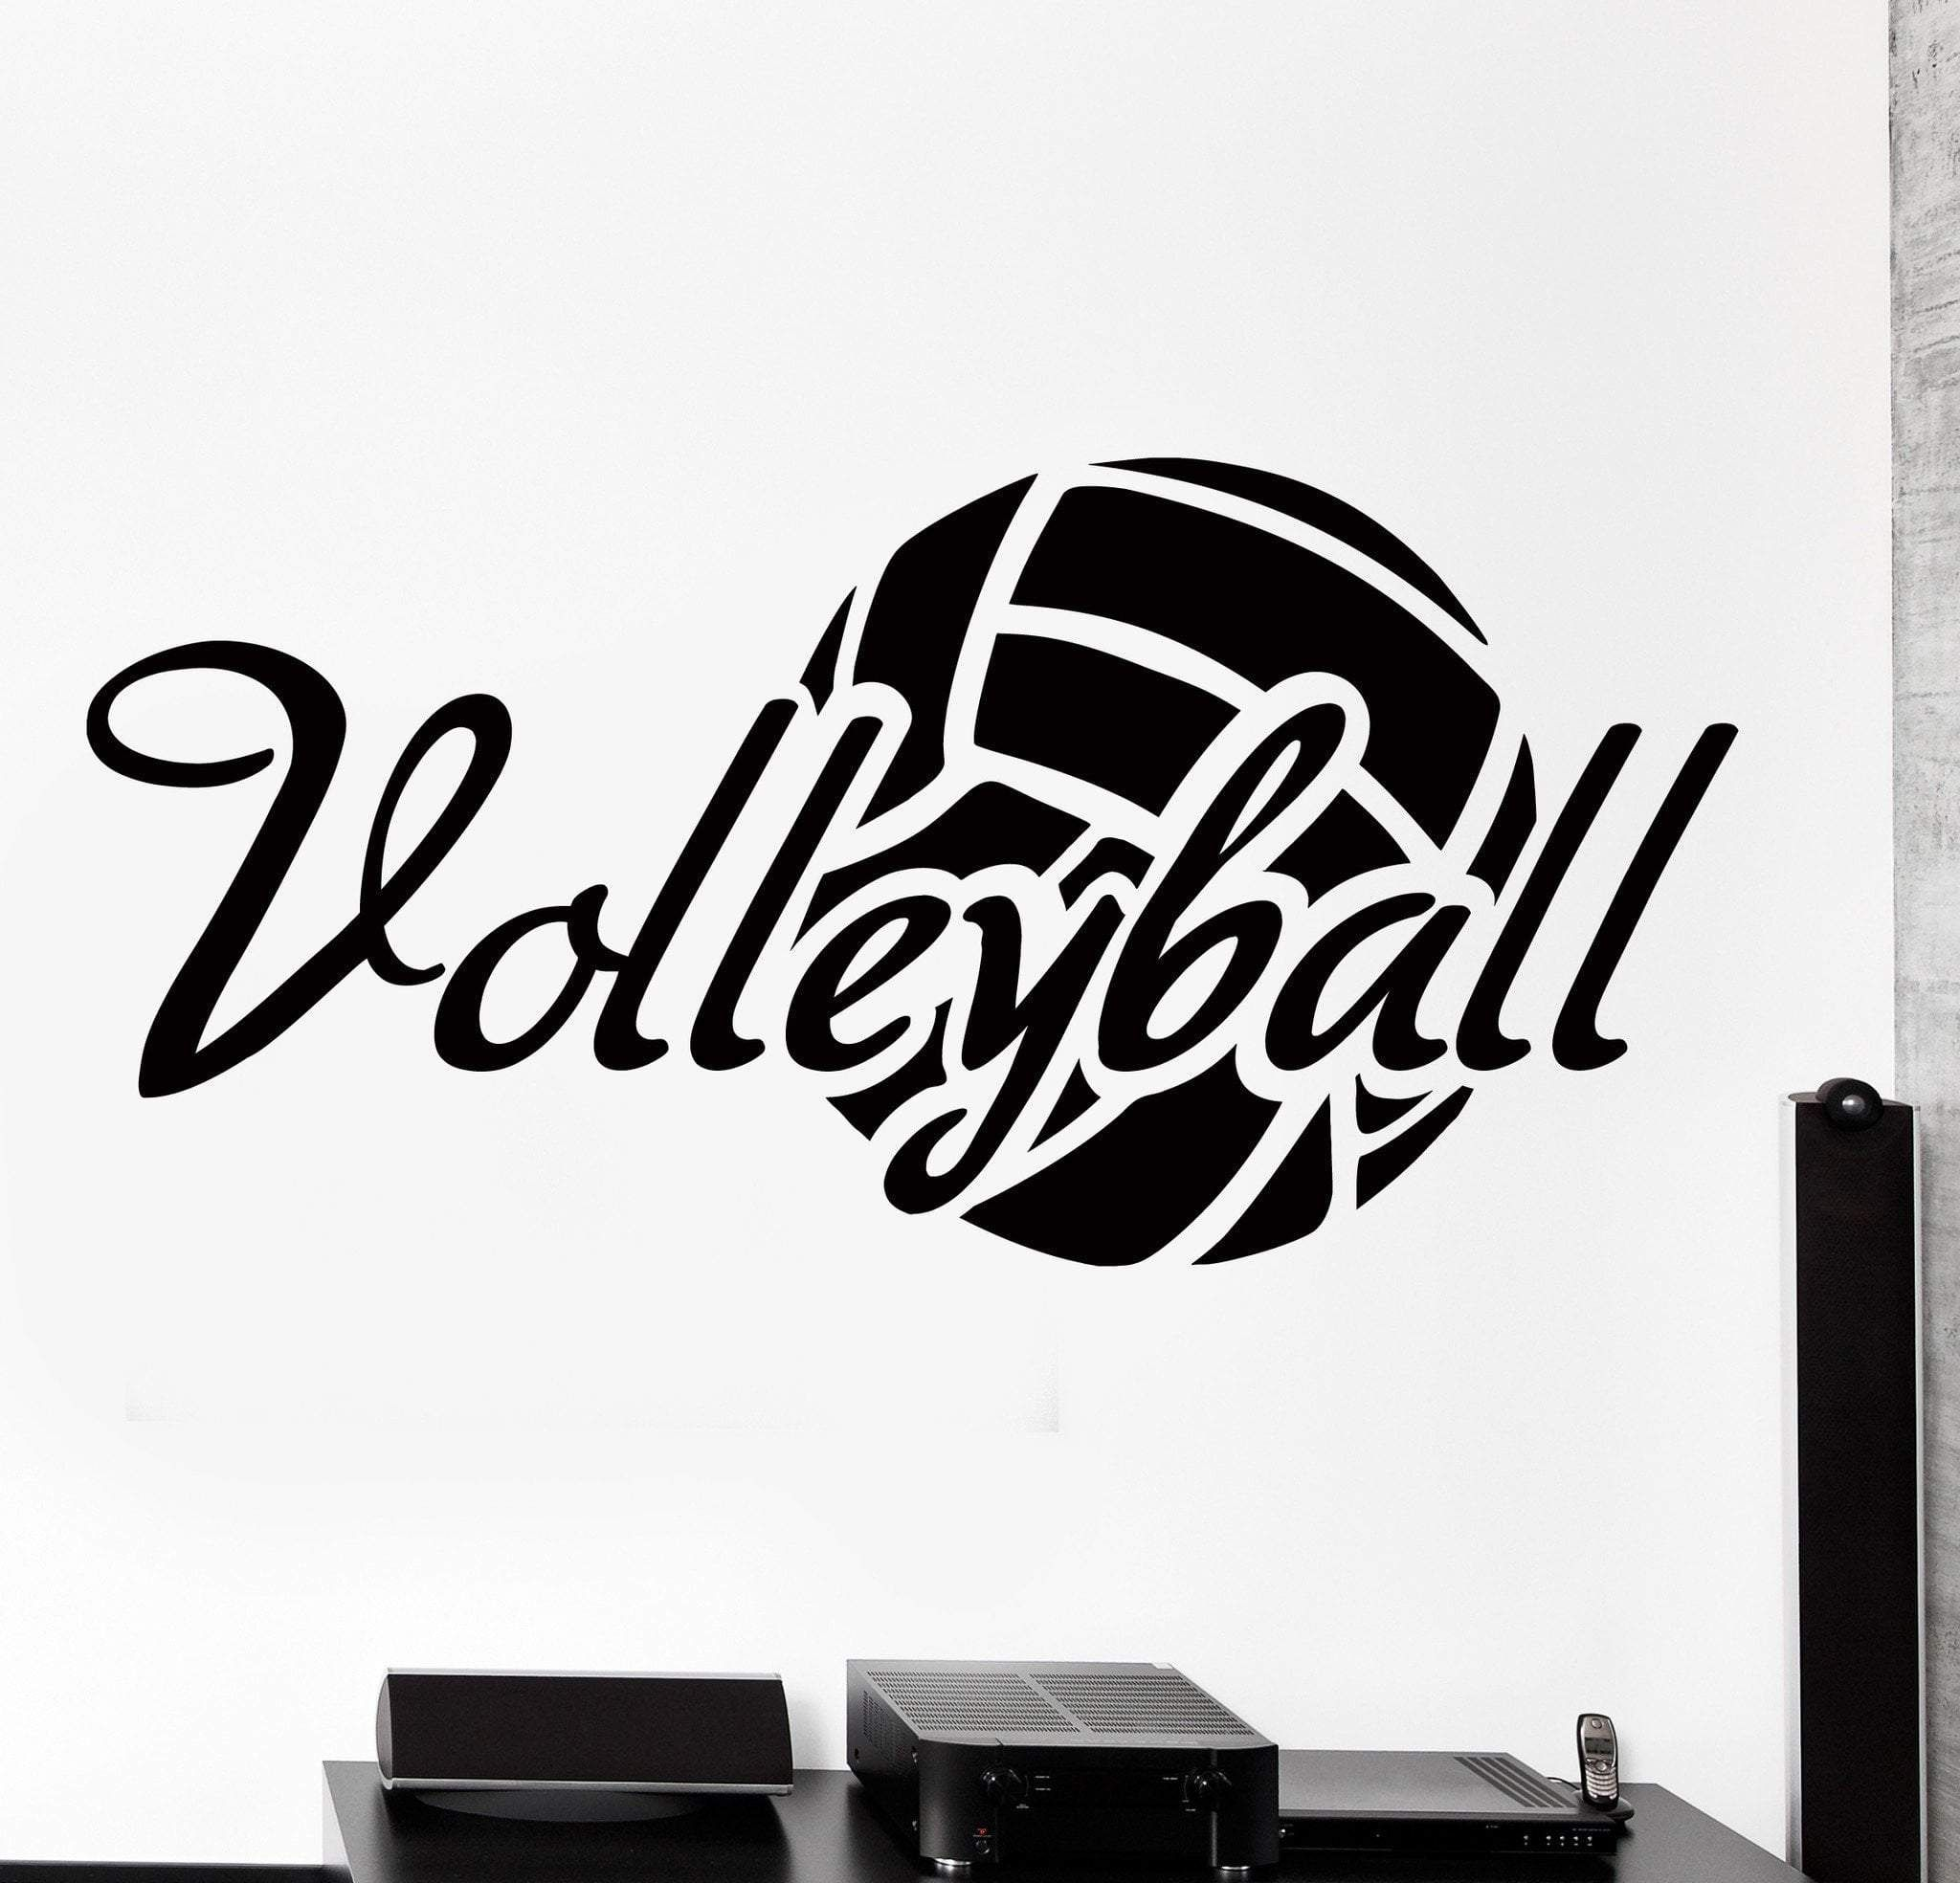 Wall Vinyl Decal Volleyball Motivation Quote Word Sport Home Decor Unique Gift Z4329 Vinyl Wall Decals Volleyball Motivation Volleyball Room